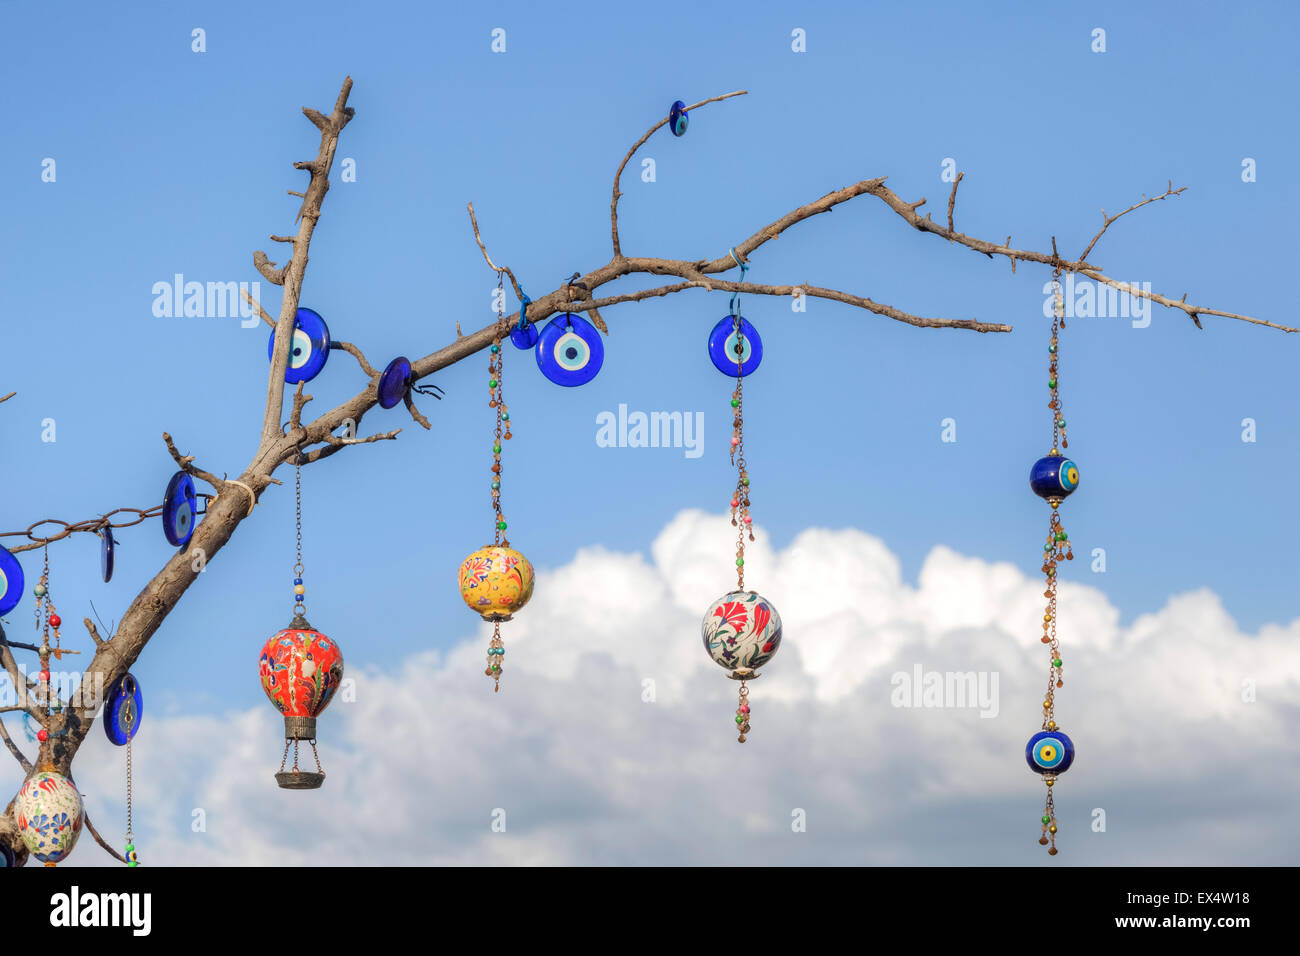 Turkish Souvenirs hanging on a branch - Stock Image